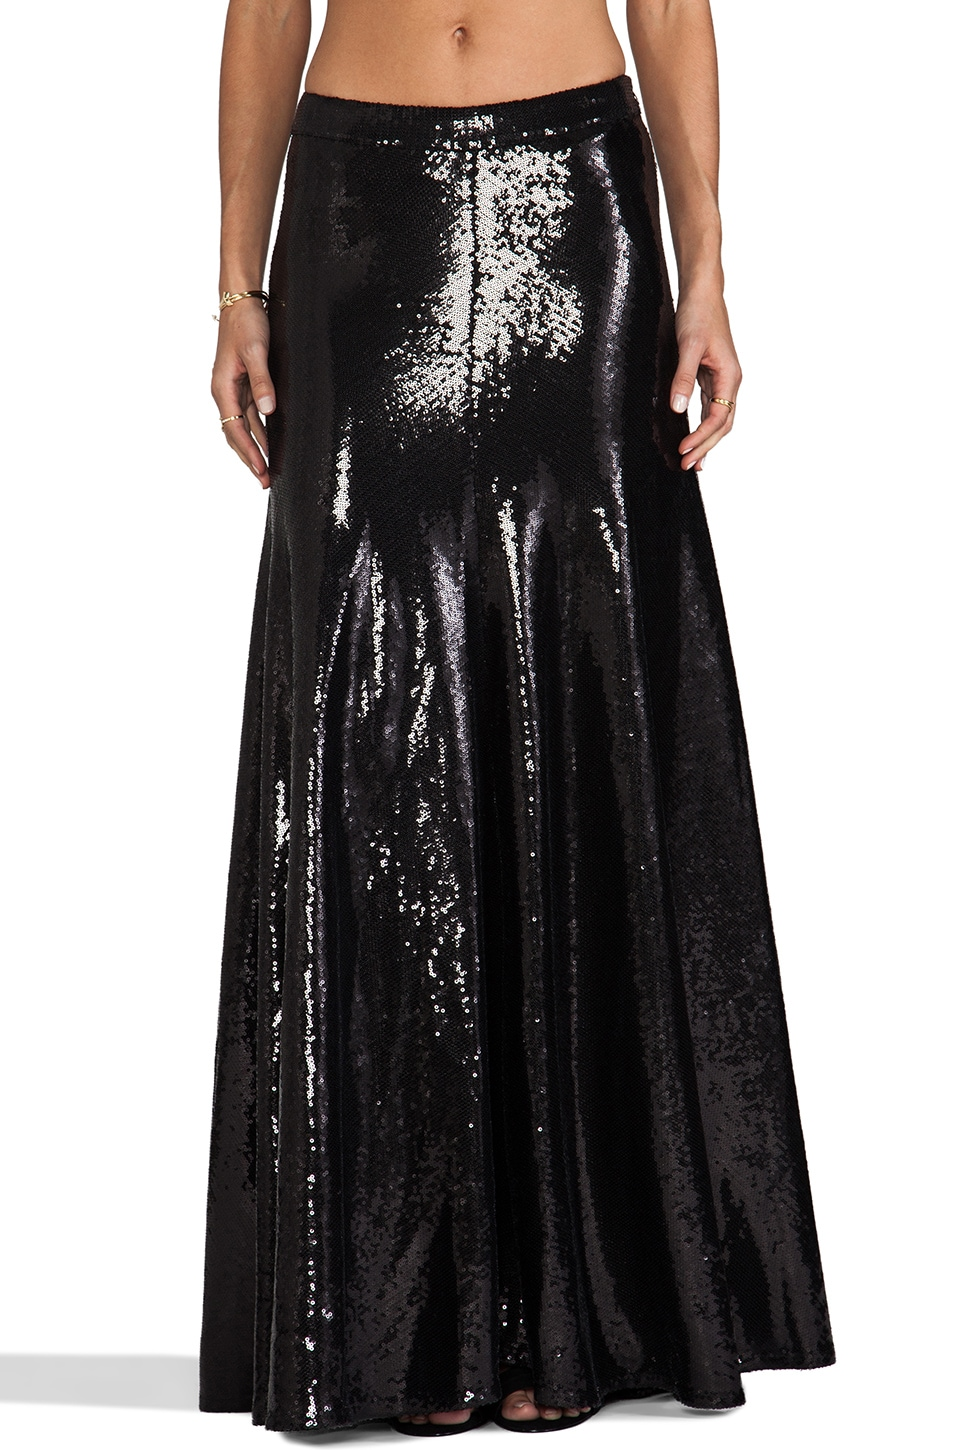 Wildfox Couture Cecilia Sequin Maxi Skirt in Black | REVOLVE